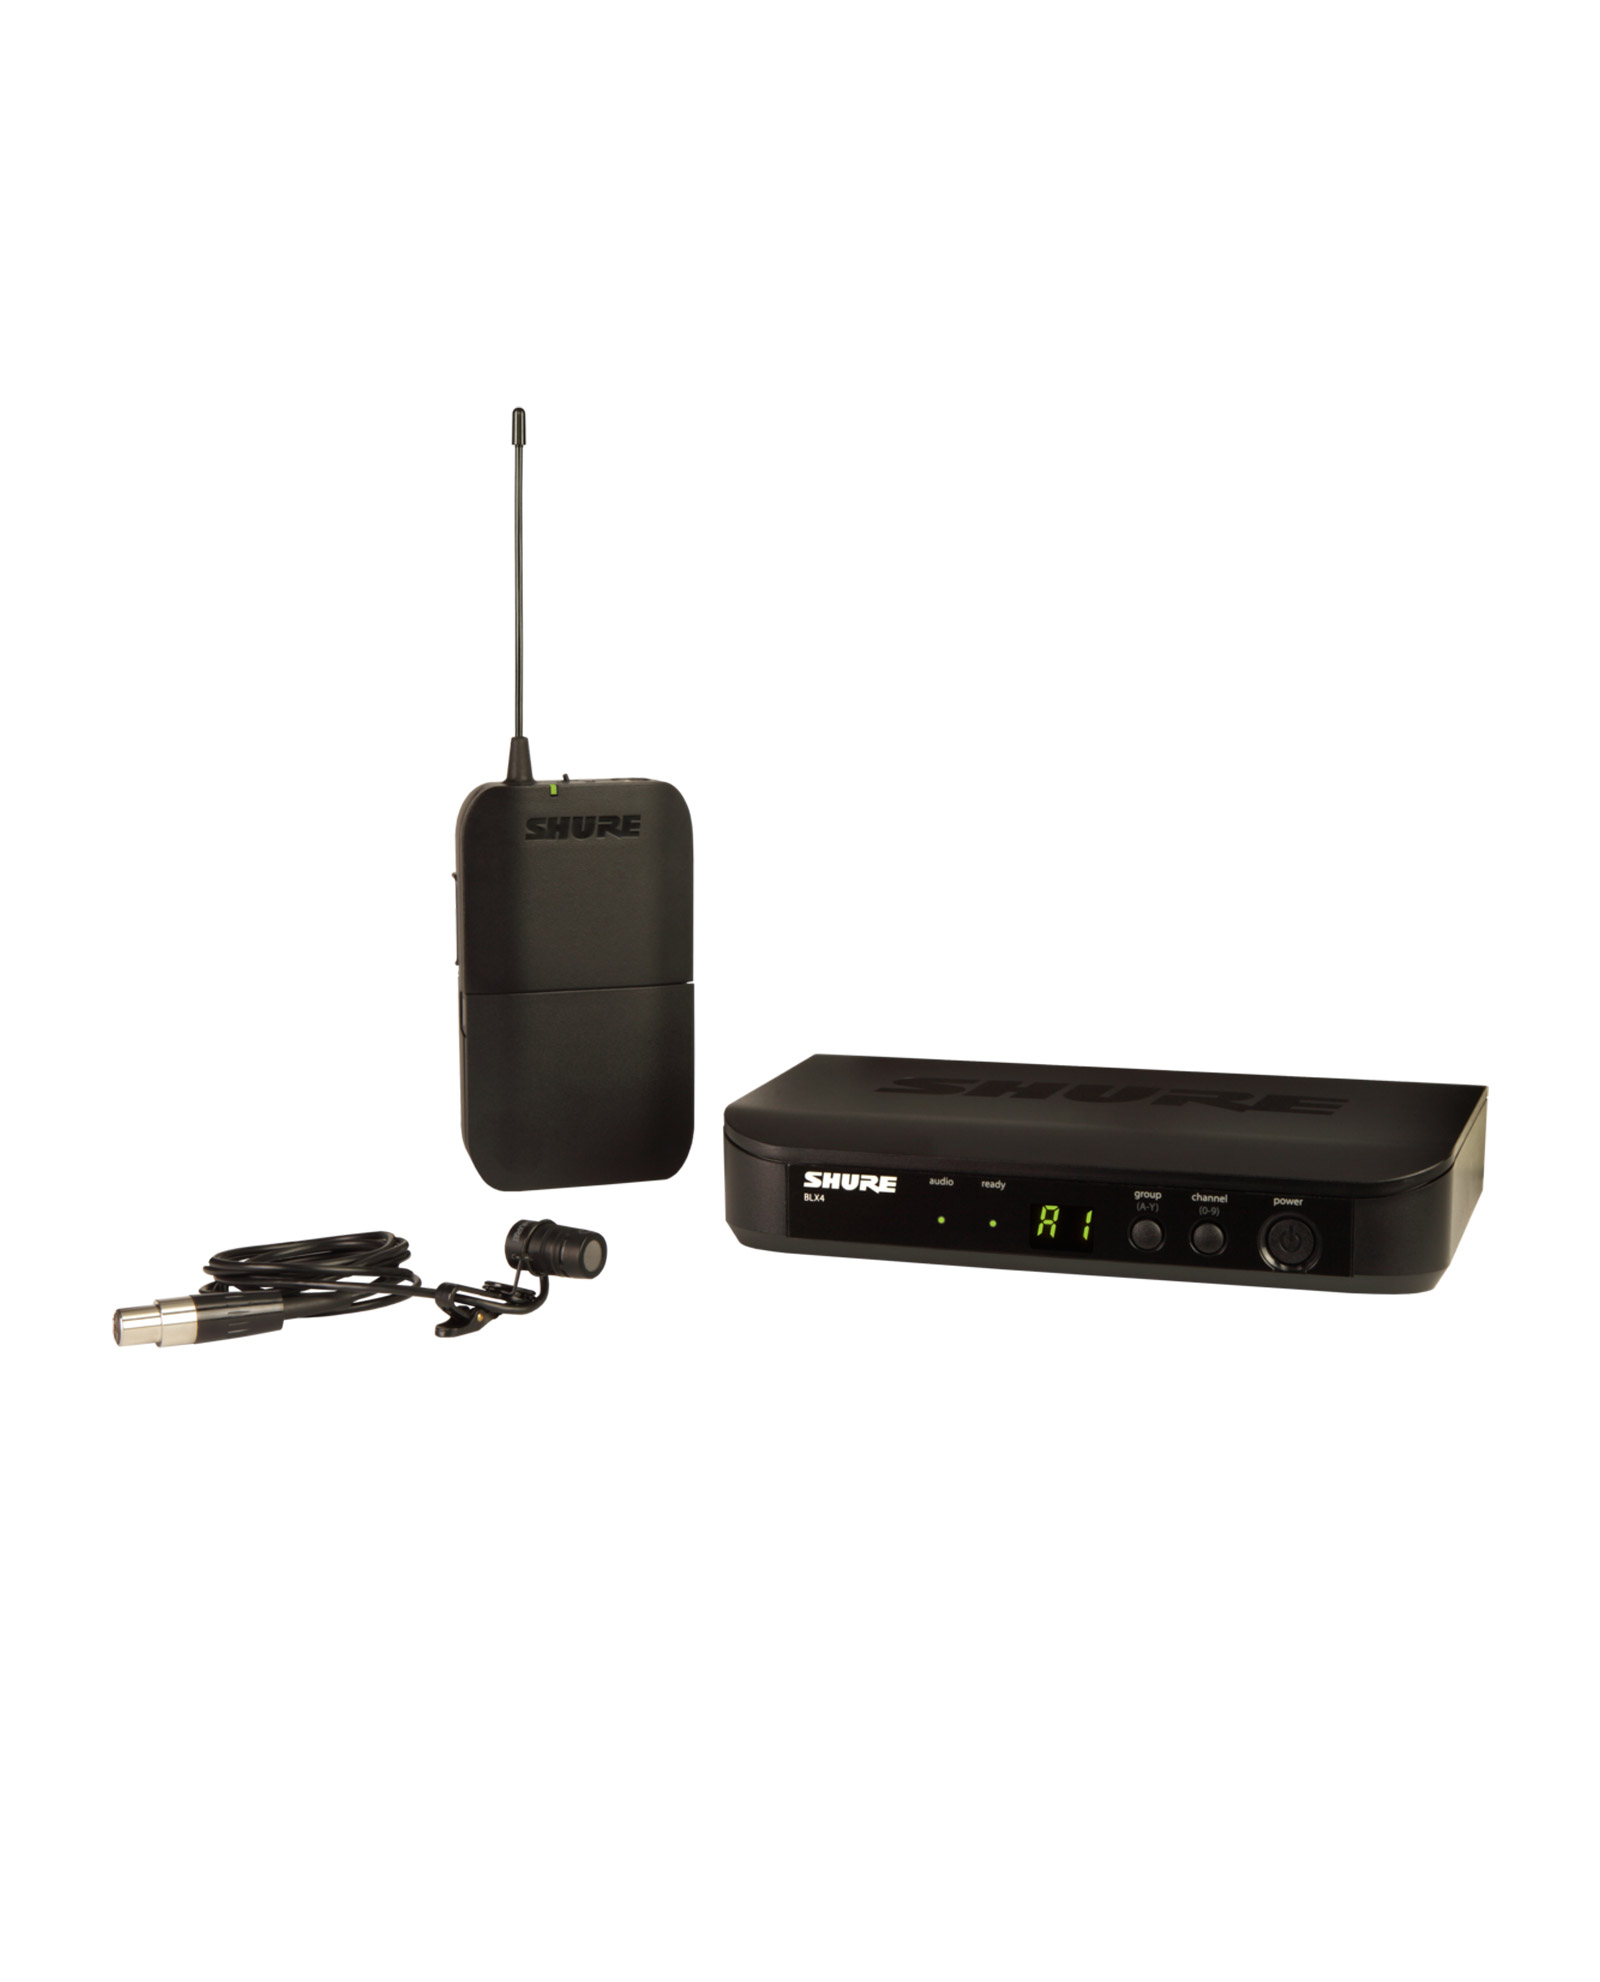 Shure Blx14 W85 Wireless Presenter System With Wl185 Lavalier Microphone 1